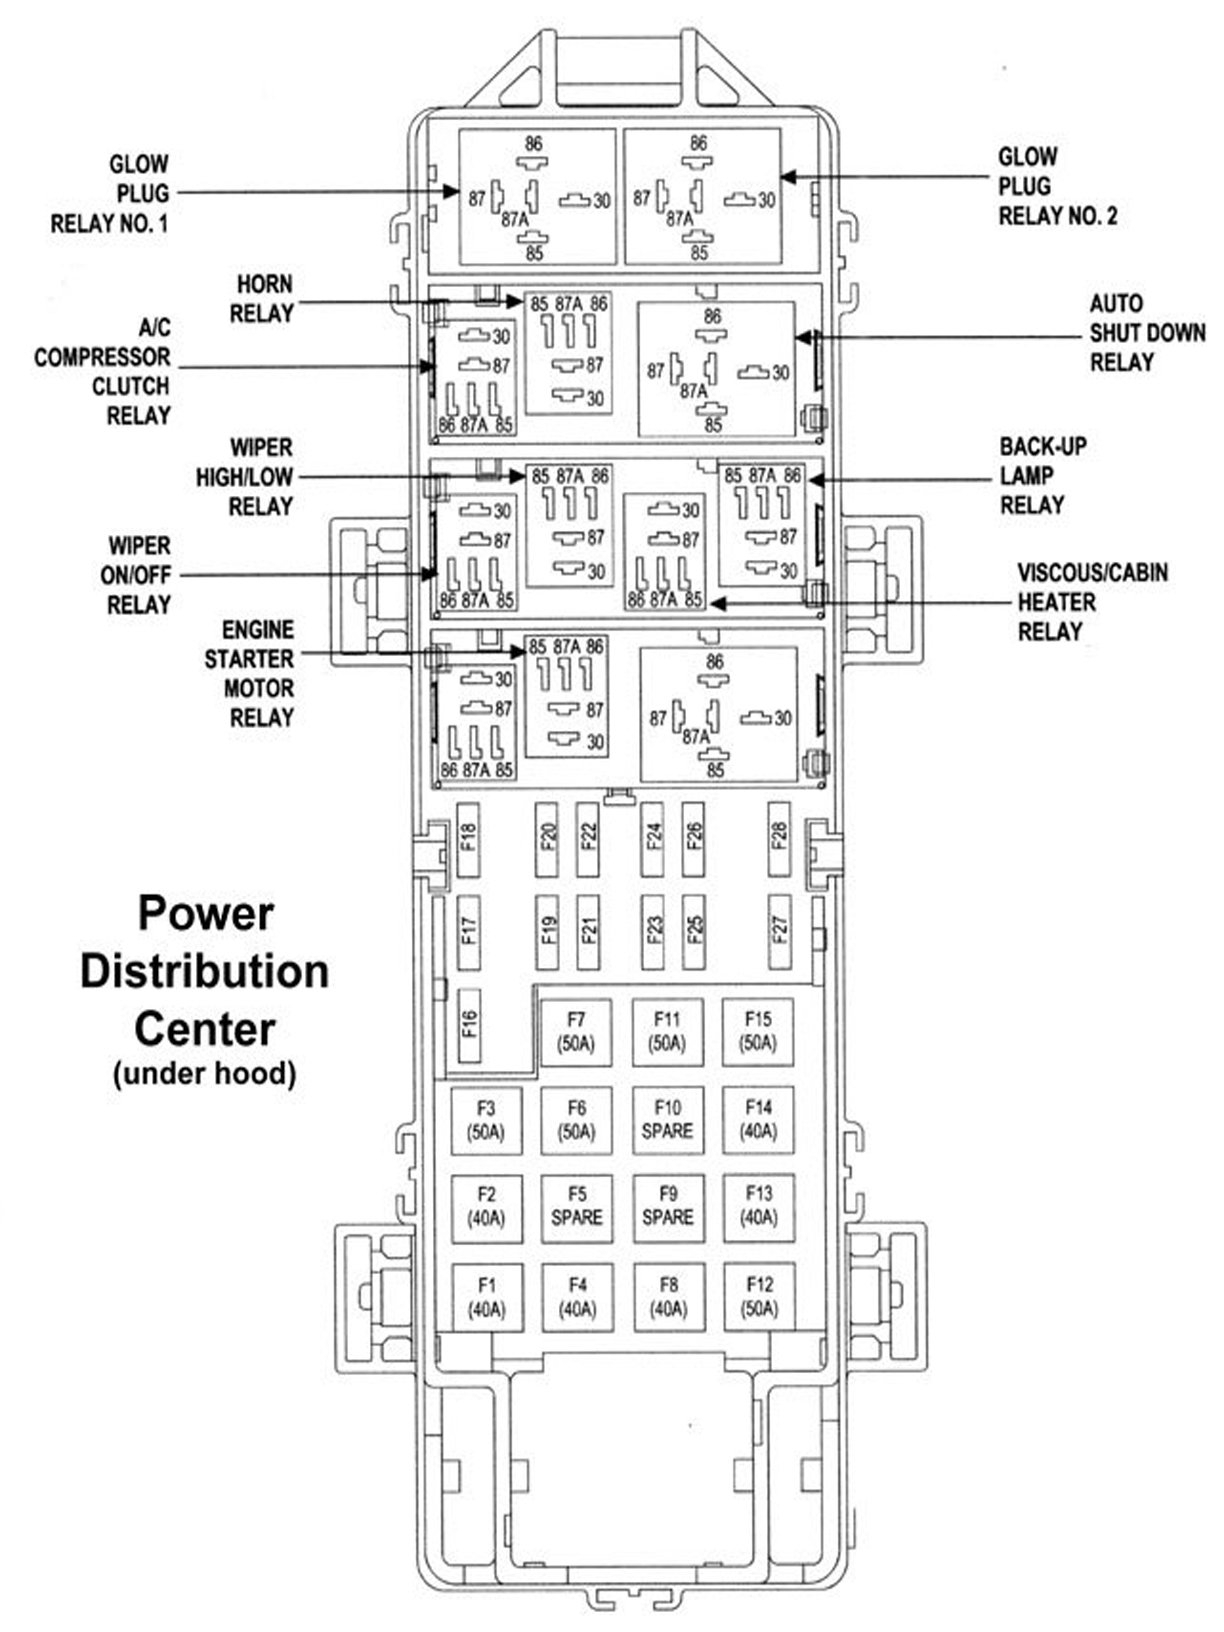 Jeep Grand Cherokee Wj 1999 To 2004 Fuse Box Diagram ...